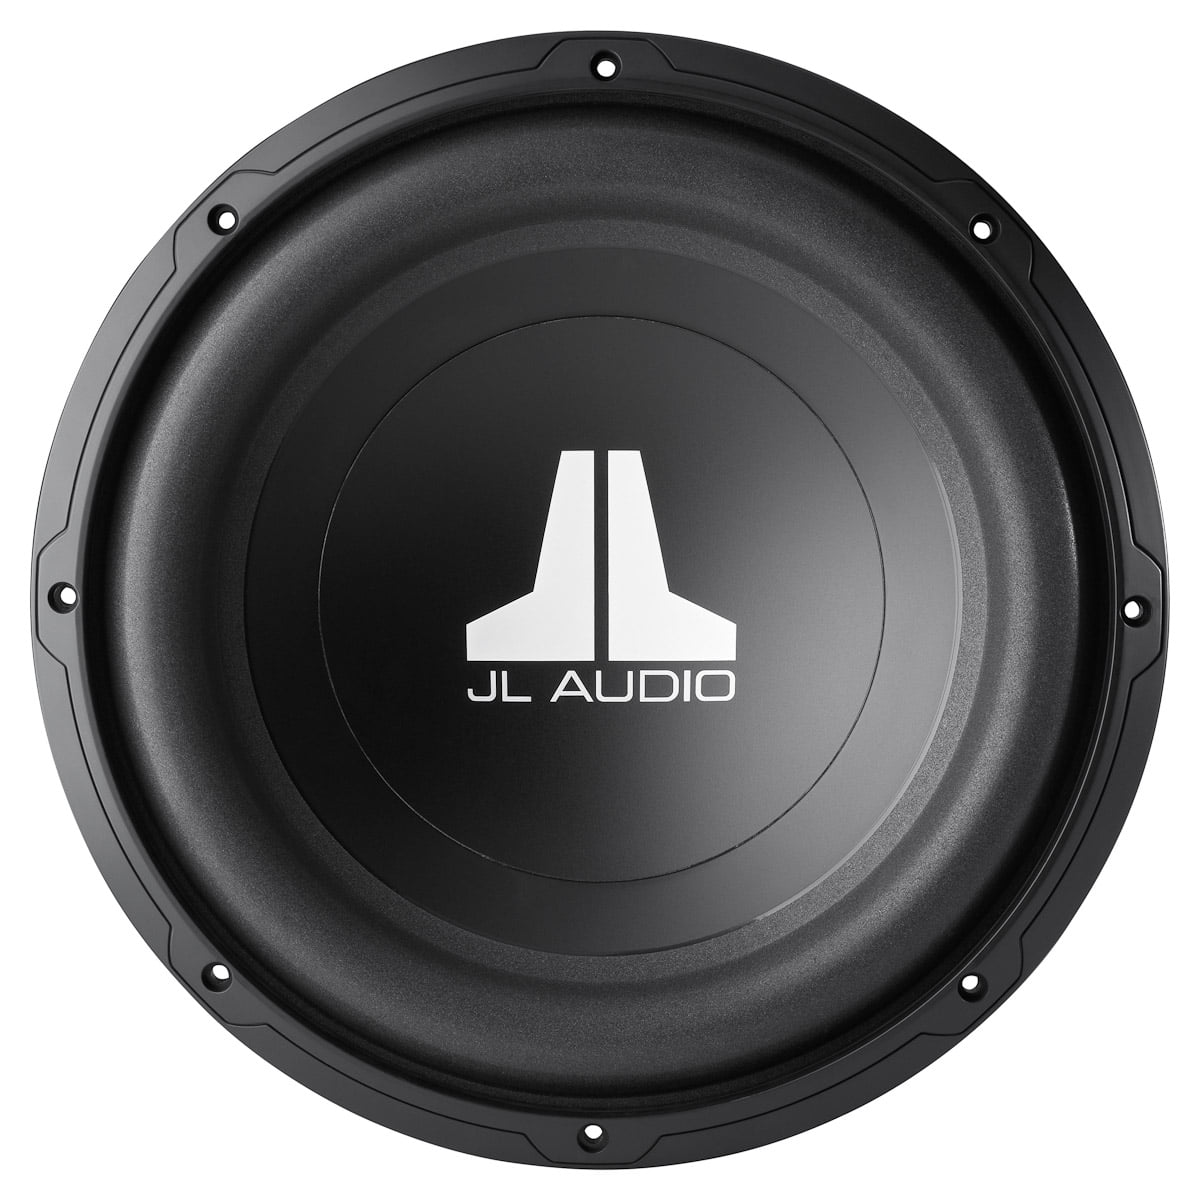 jl audio 12w0v3 4 12 300 watt 4 ohm subwoofer 92166. Black Bedroom Furniture Sets. Home Design Ideas